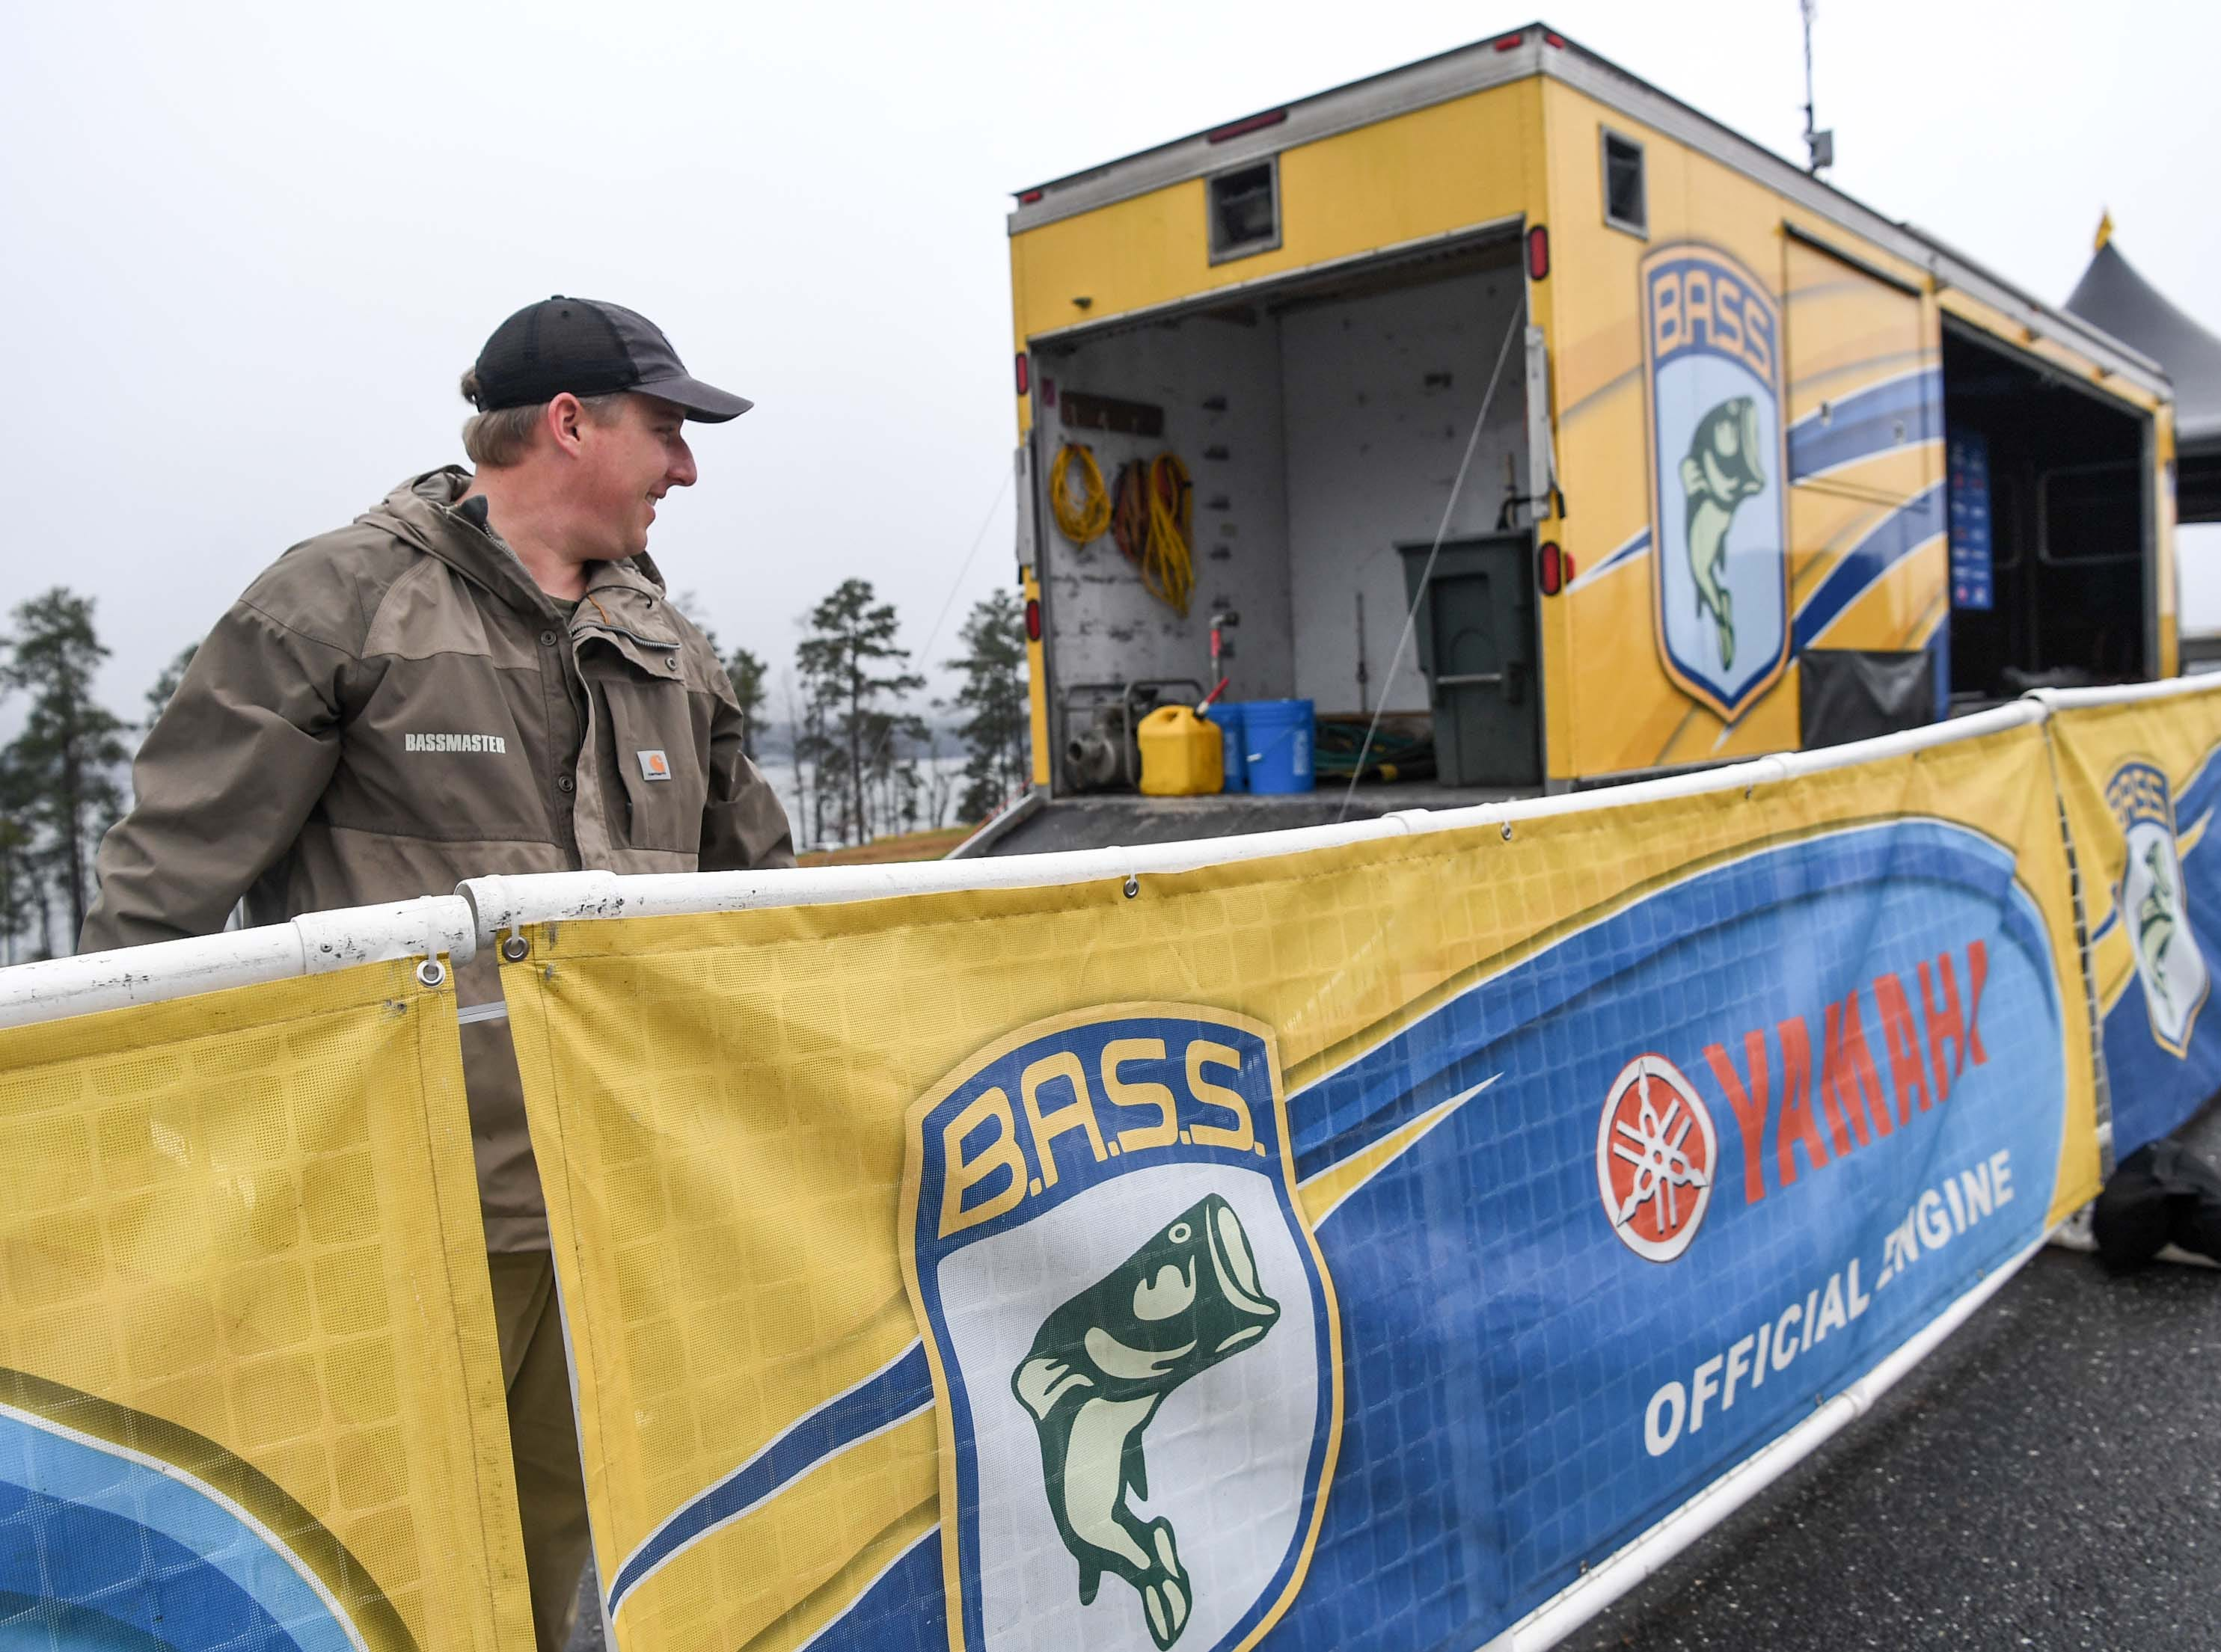 Hank Weldon, director of the high school and college Bassmaster organization, helps set up for the Mossy Oak Fishing Bassmaster High School Open at the Green Pond Boat Landing on Hartwell Lake in Anderson Friday. The event begins 6:45 a.m. at the landing, with 87 schools from 15 states participating he said.